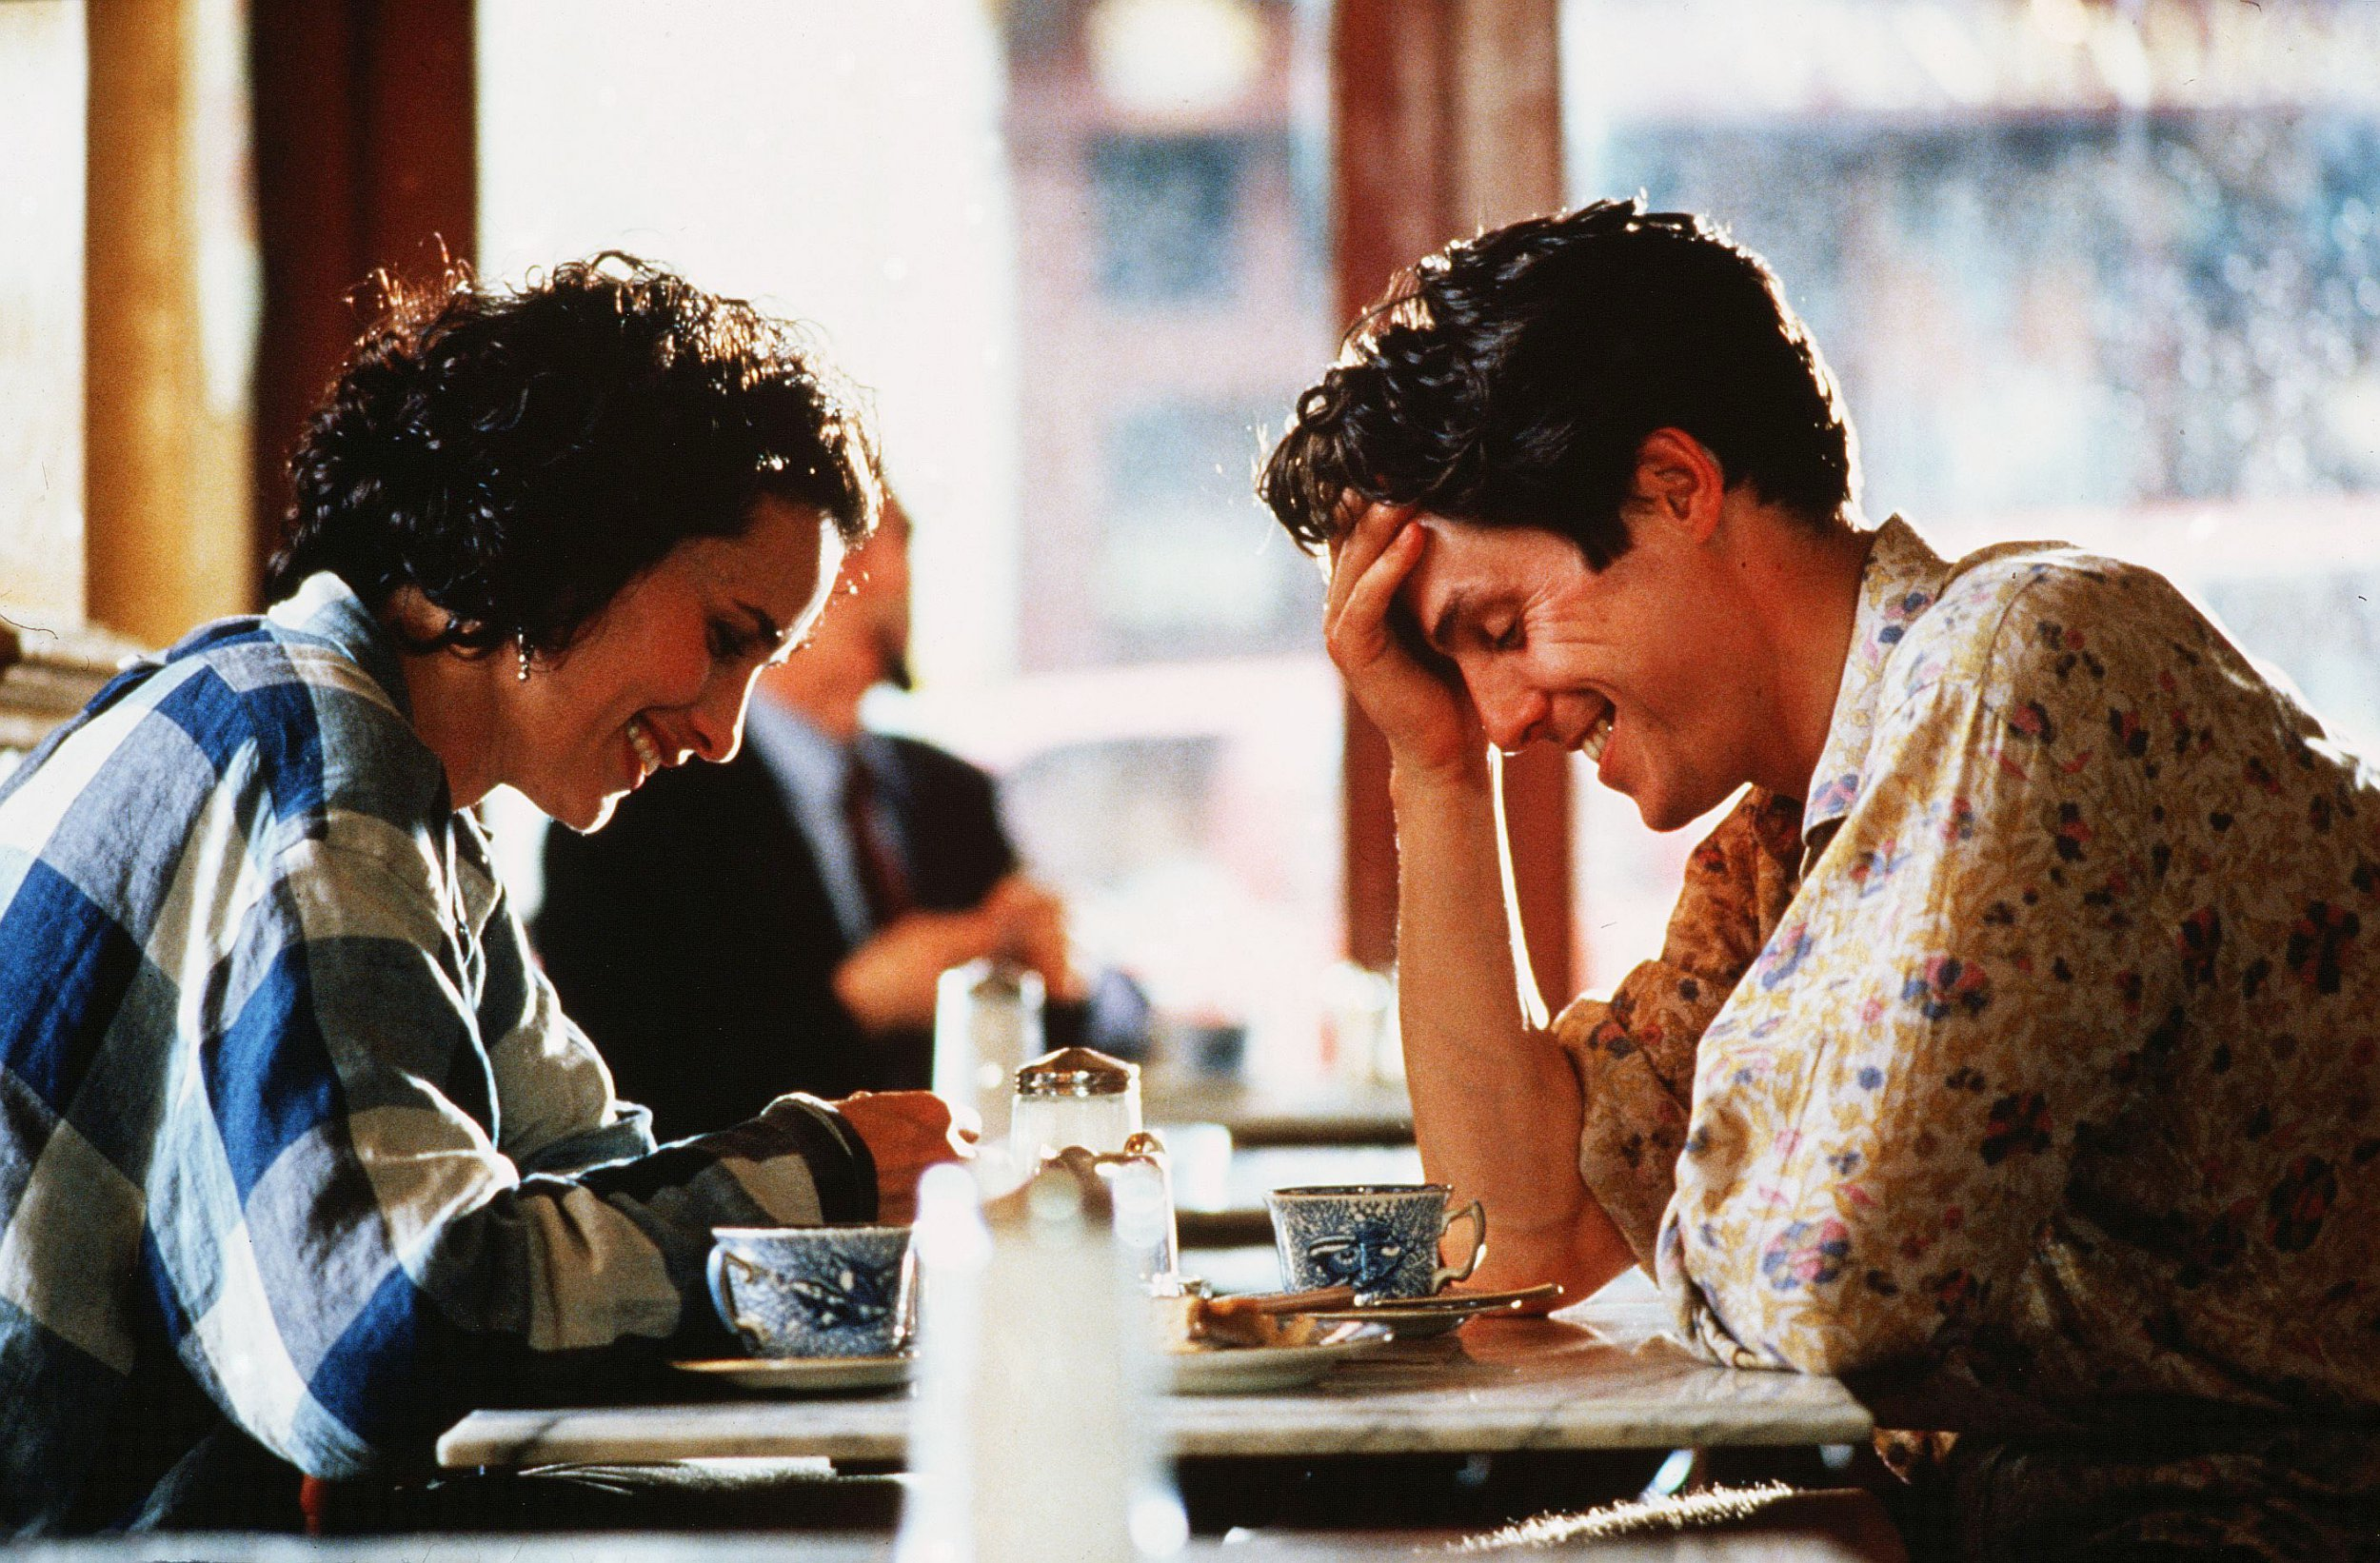 When did Four Weddings And A Funeral originally come out and how to watch it?